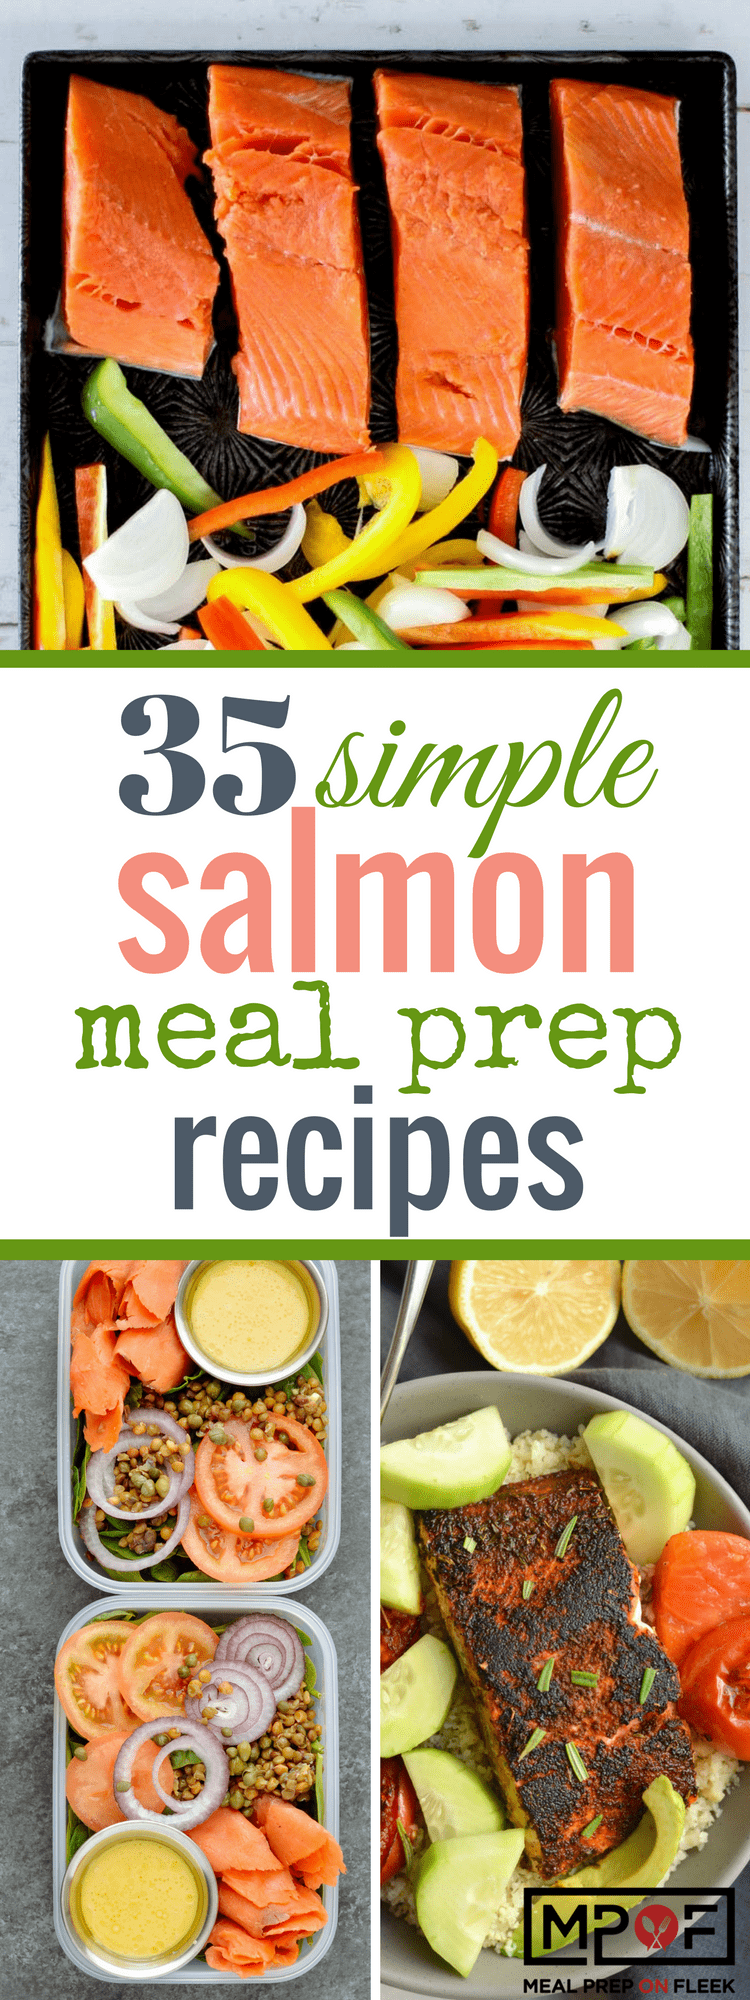 35 simple salmon meal prep recipes meal prep on fleek 35 simple salmon meal prep recipes forumfinder Image collections